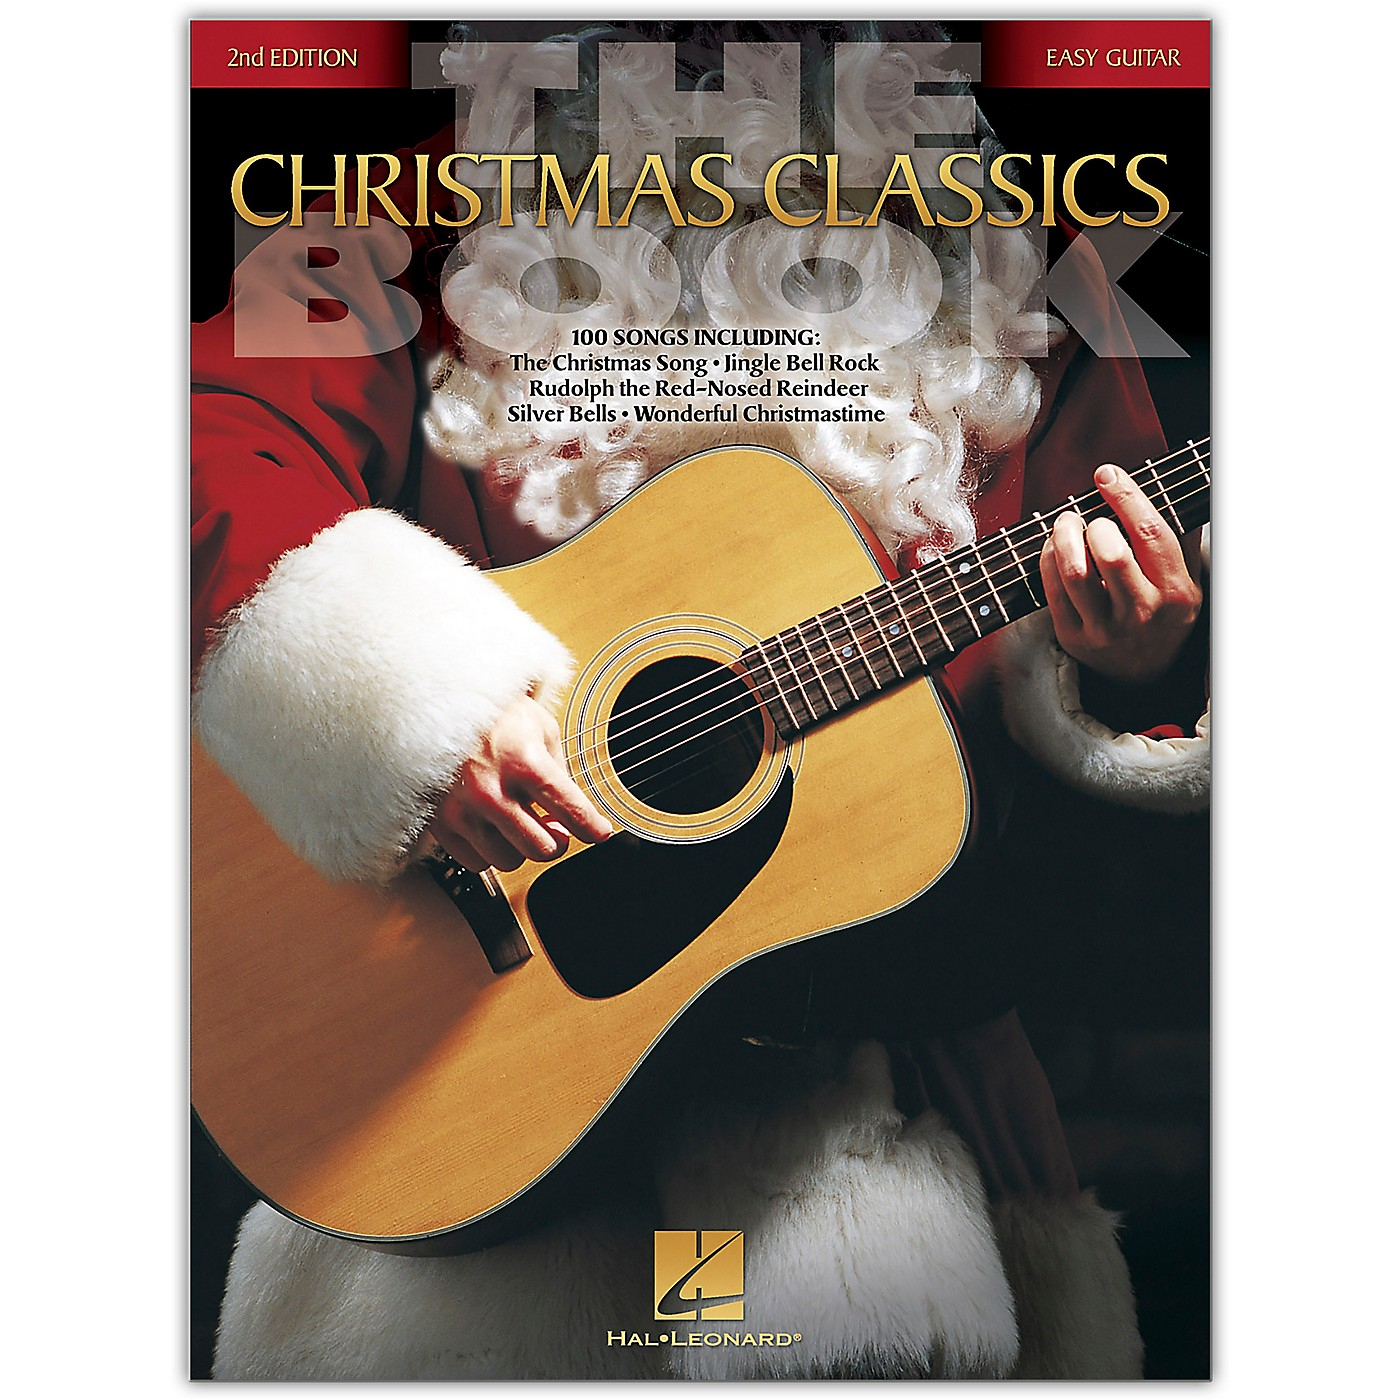 Hal Leonard The Christmas Classics Book - 2nd Edition (Easy Guitar Without Tablature) Easy Guitar Series Softcover thumbnail